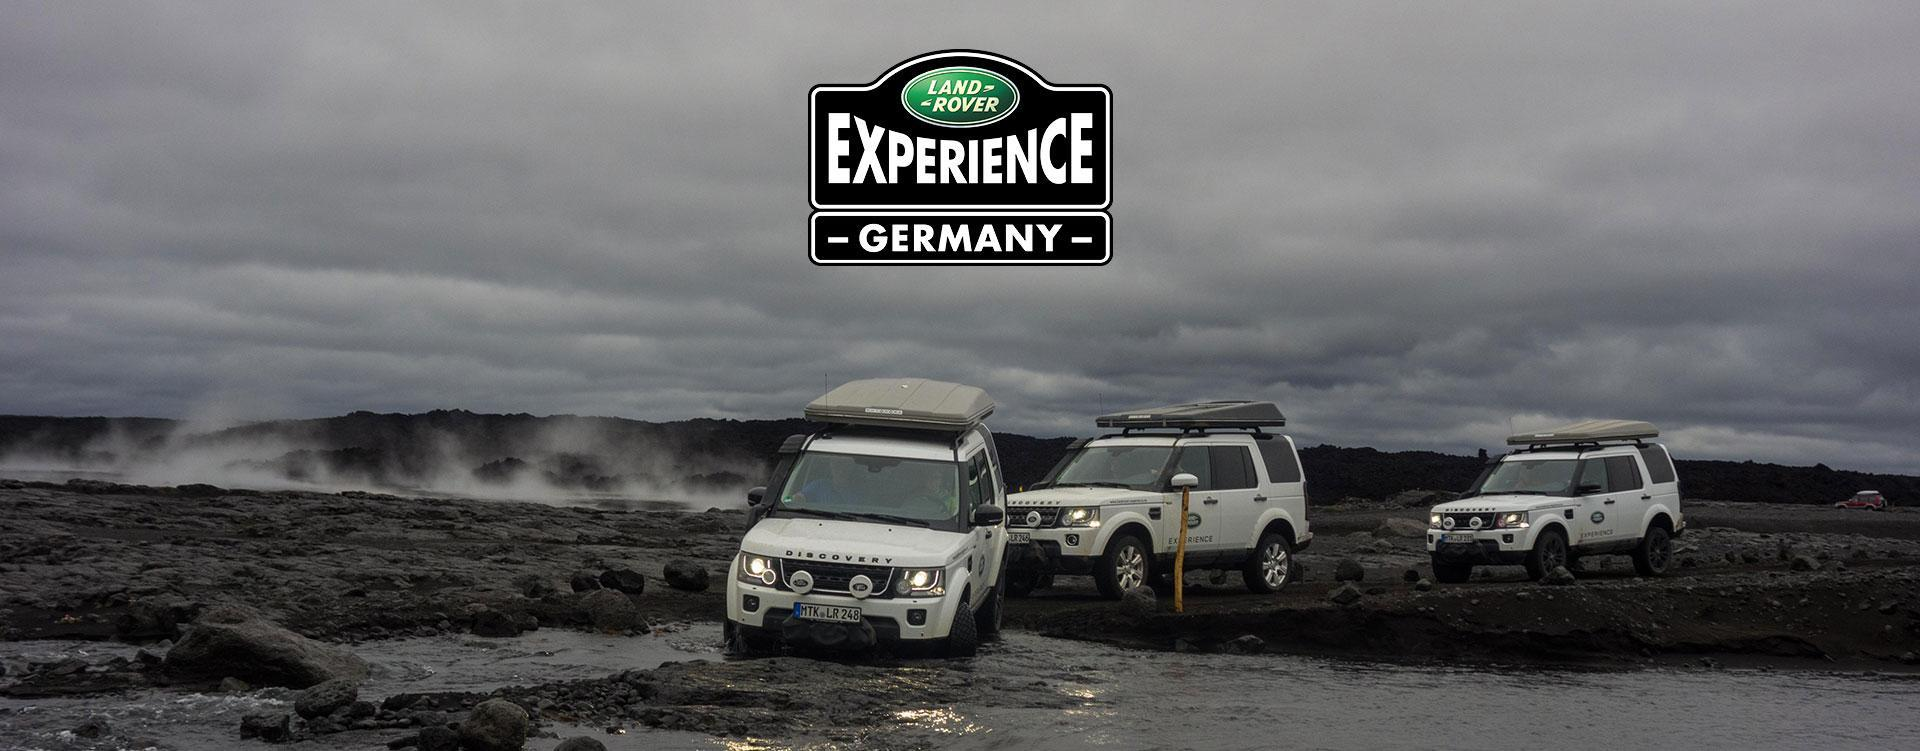 landrover_experience